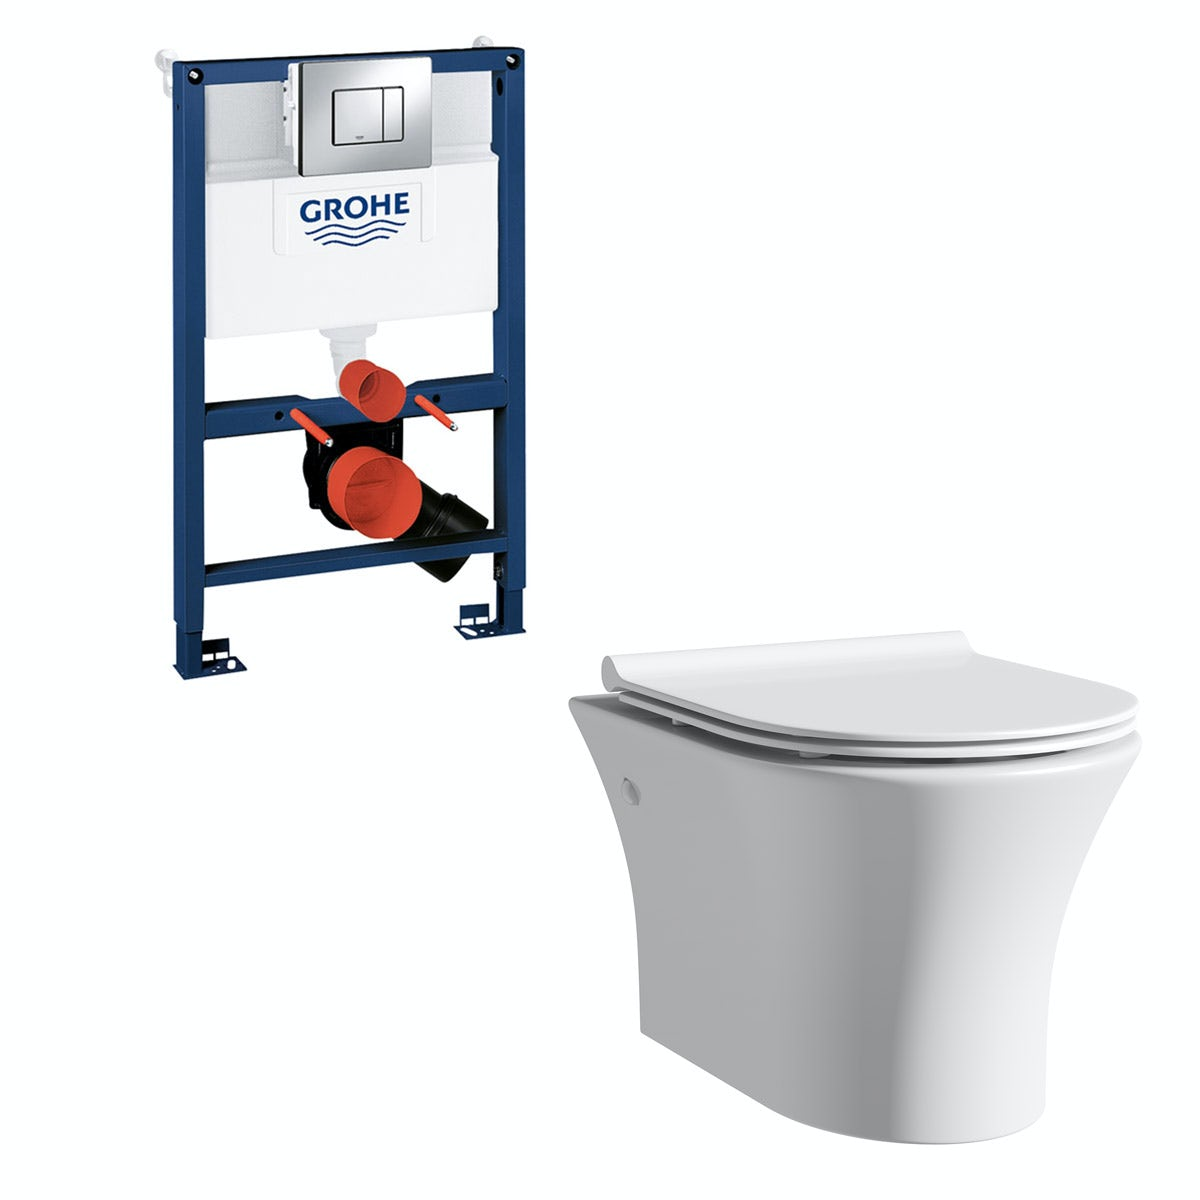 Mode Hardy rimless wall hung toilet, Grohe frame and Skate Cosmopolitan push plate with slim seat 0.82m